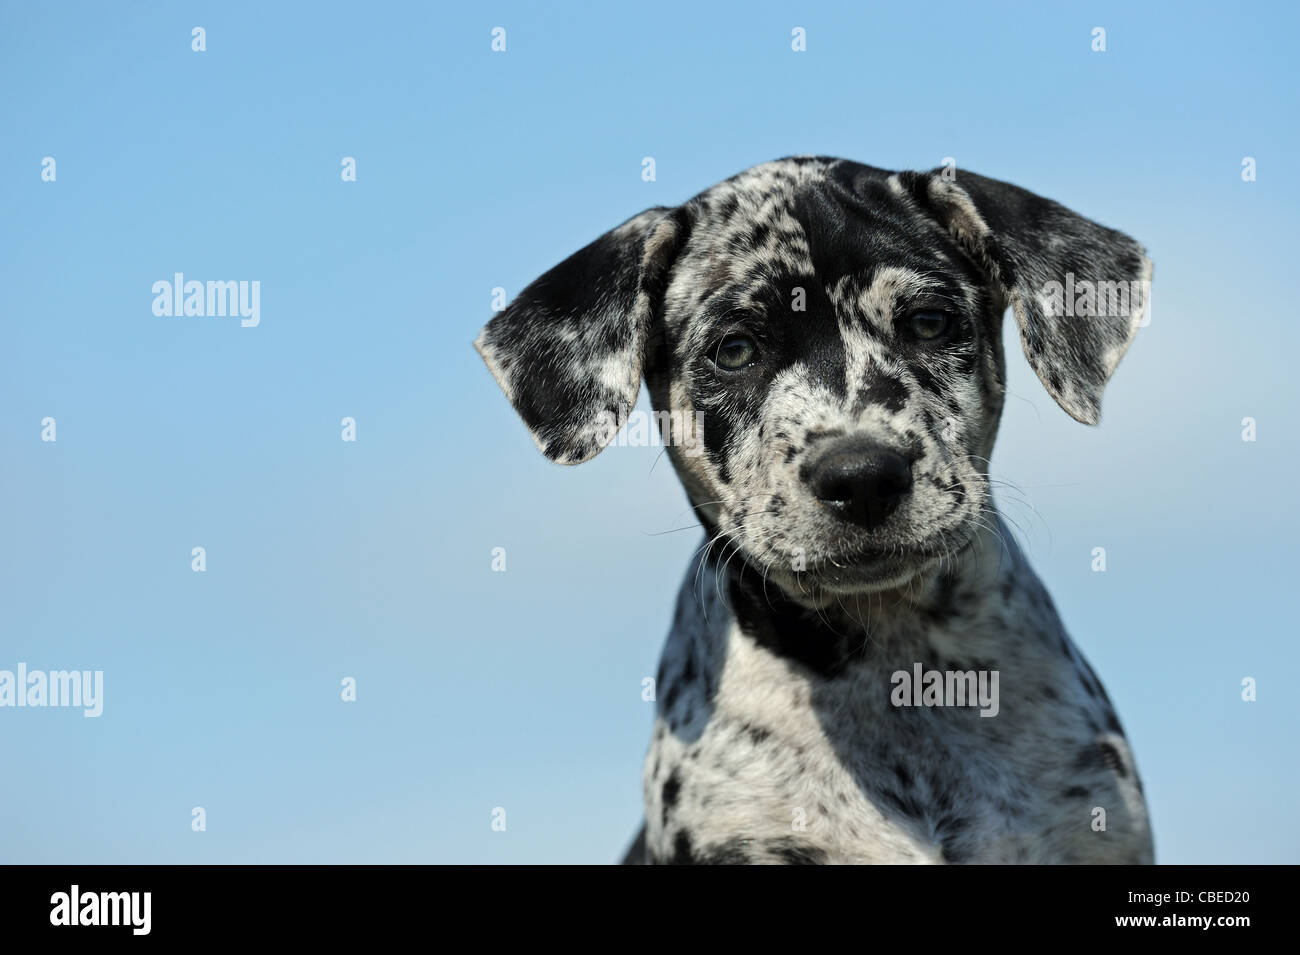 Louisiana Catahoula Leopard Dog (Canis lupus familiaris). Portrait of a puppy. - Stock Image